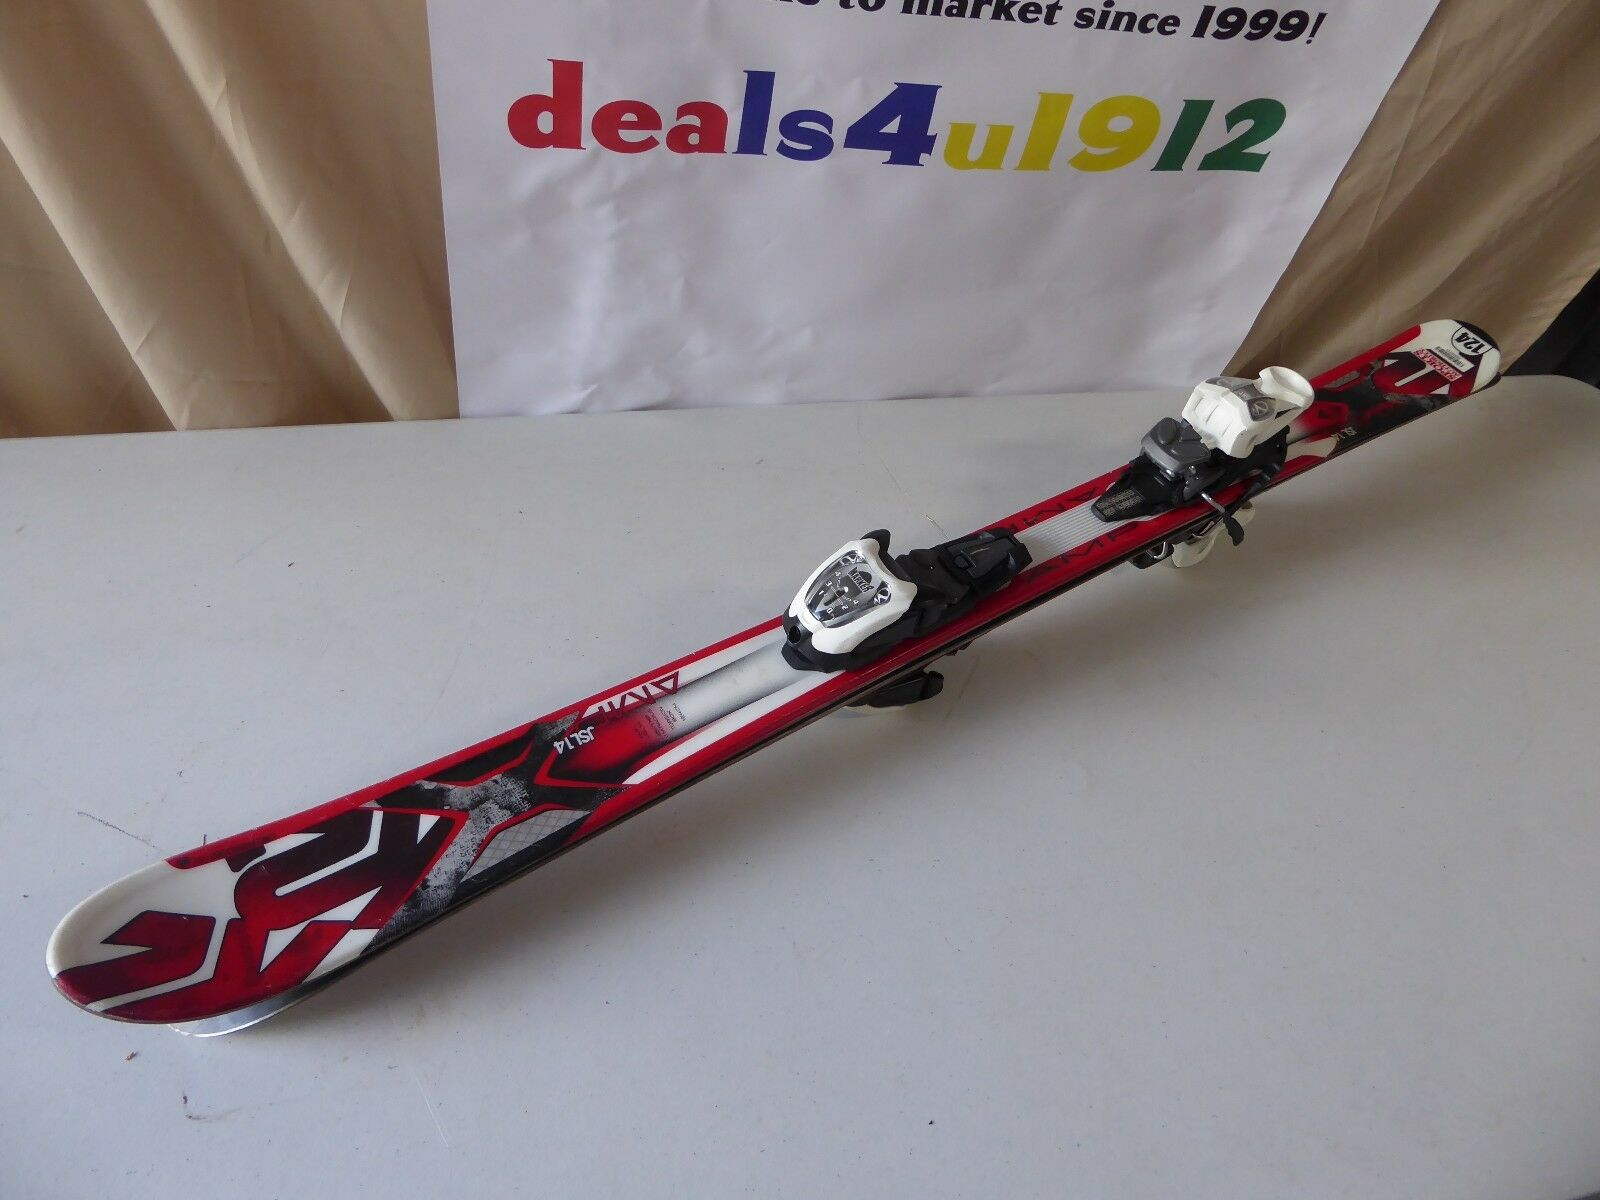 K2 Strike  Amp 124 Skis w  Marker M2 Quikclik Bindings Excellent Pre Owned Cond.  shop online today